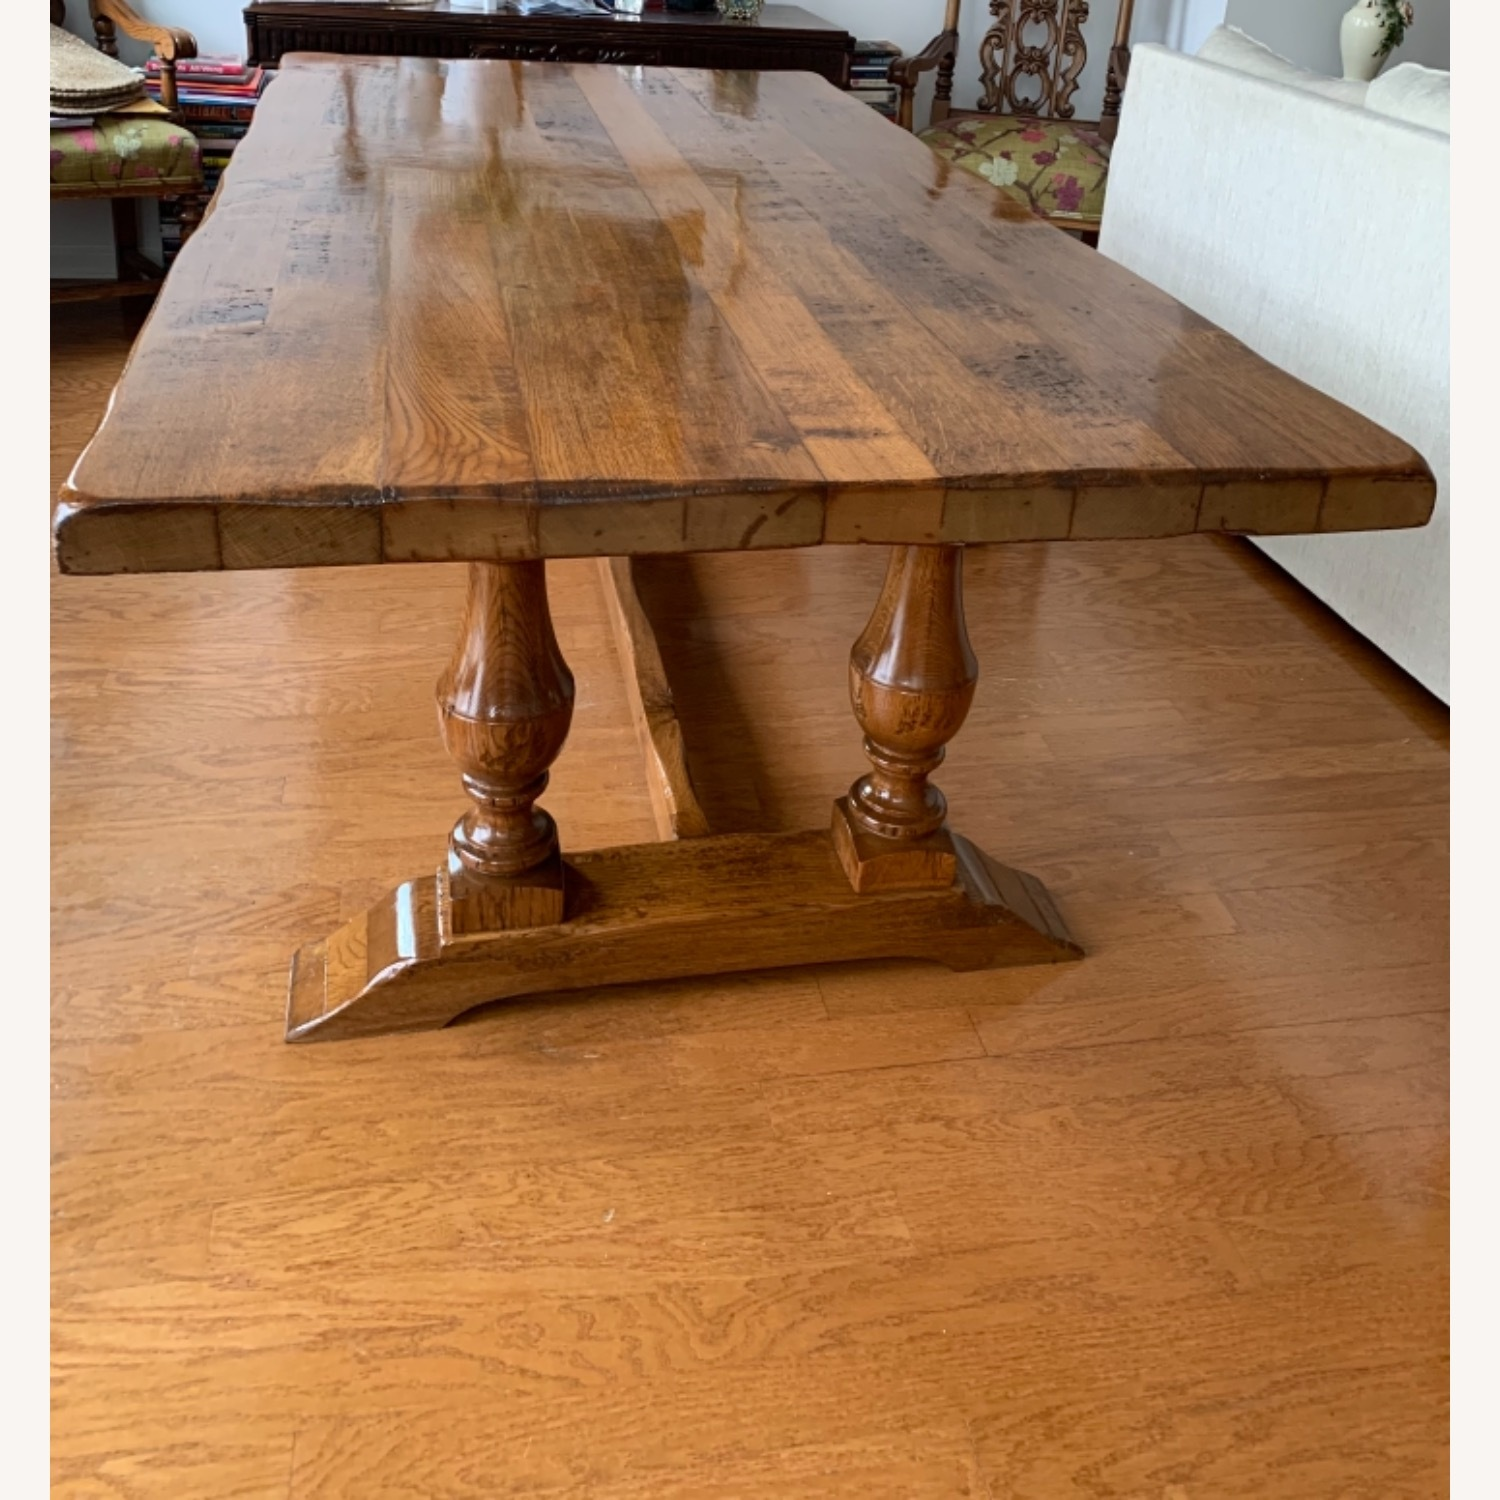 Imported French Rustic Dining Table - image-4